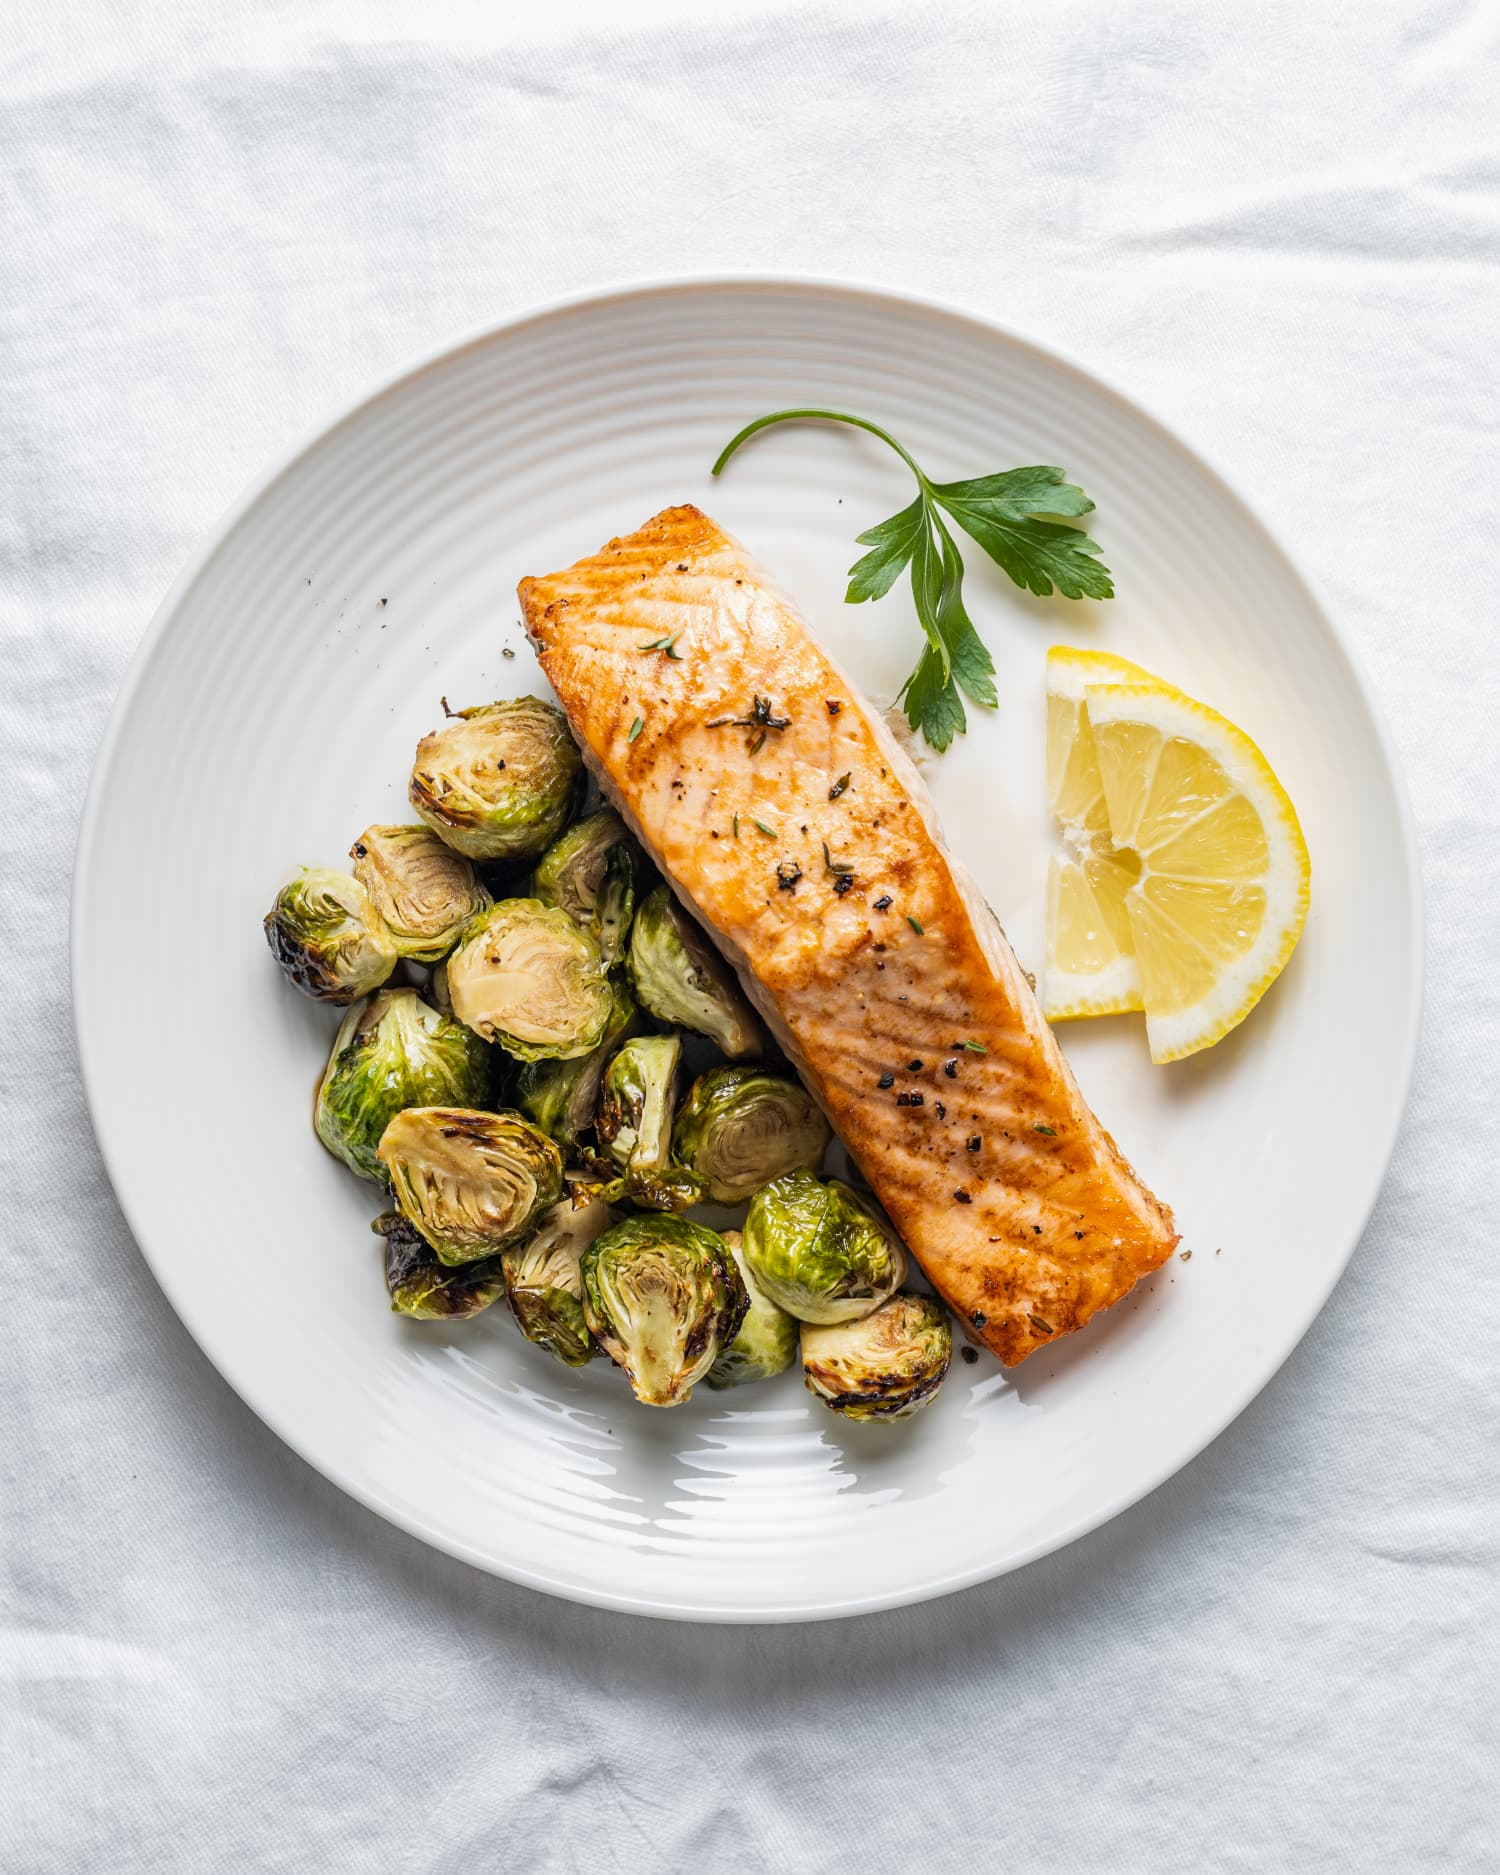 Air Fryer Salmon and Brussels Sprouts Cooks In Just 10 Minutes